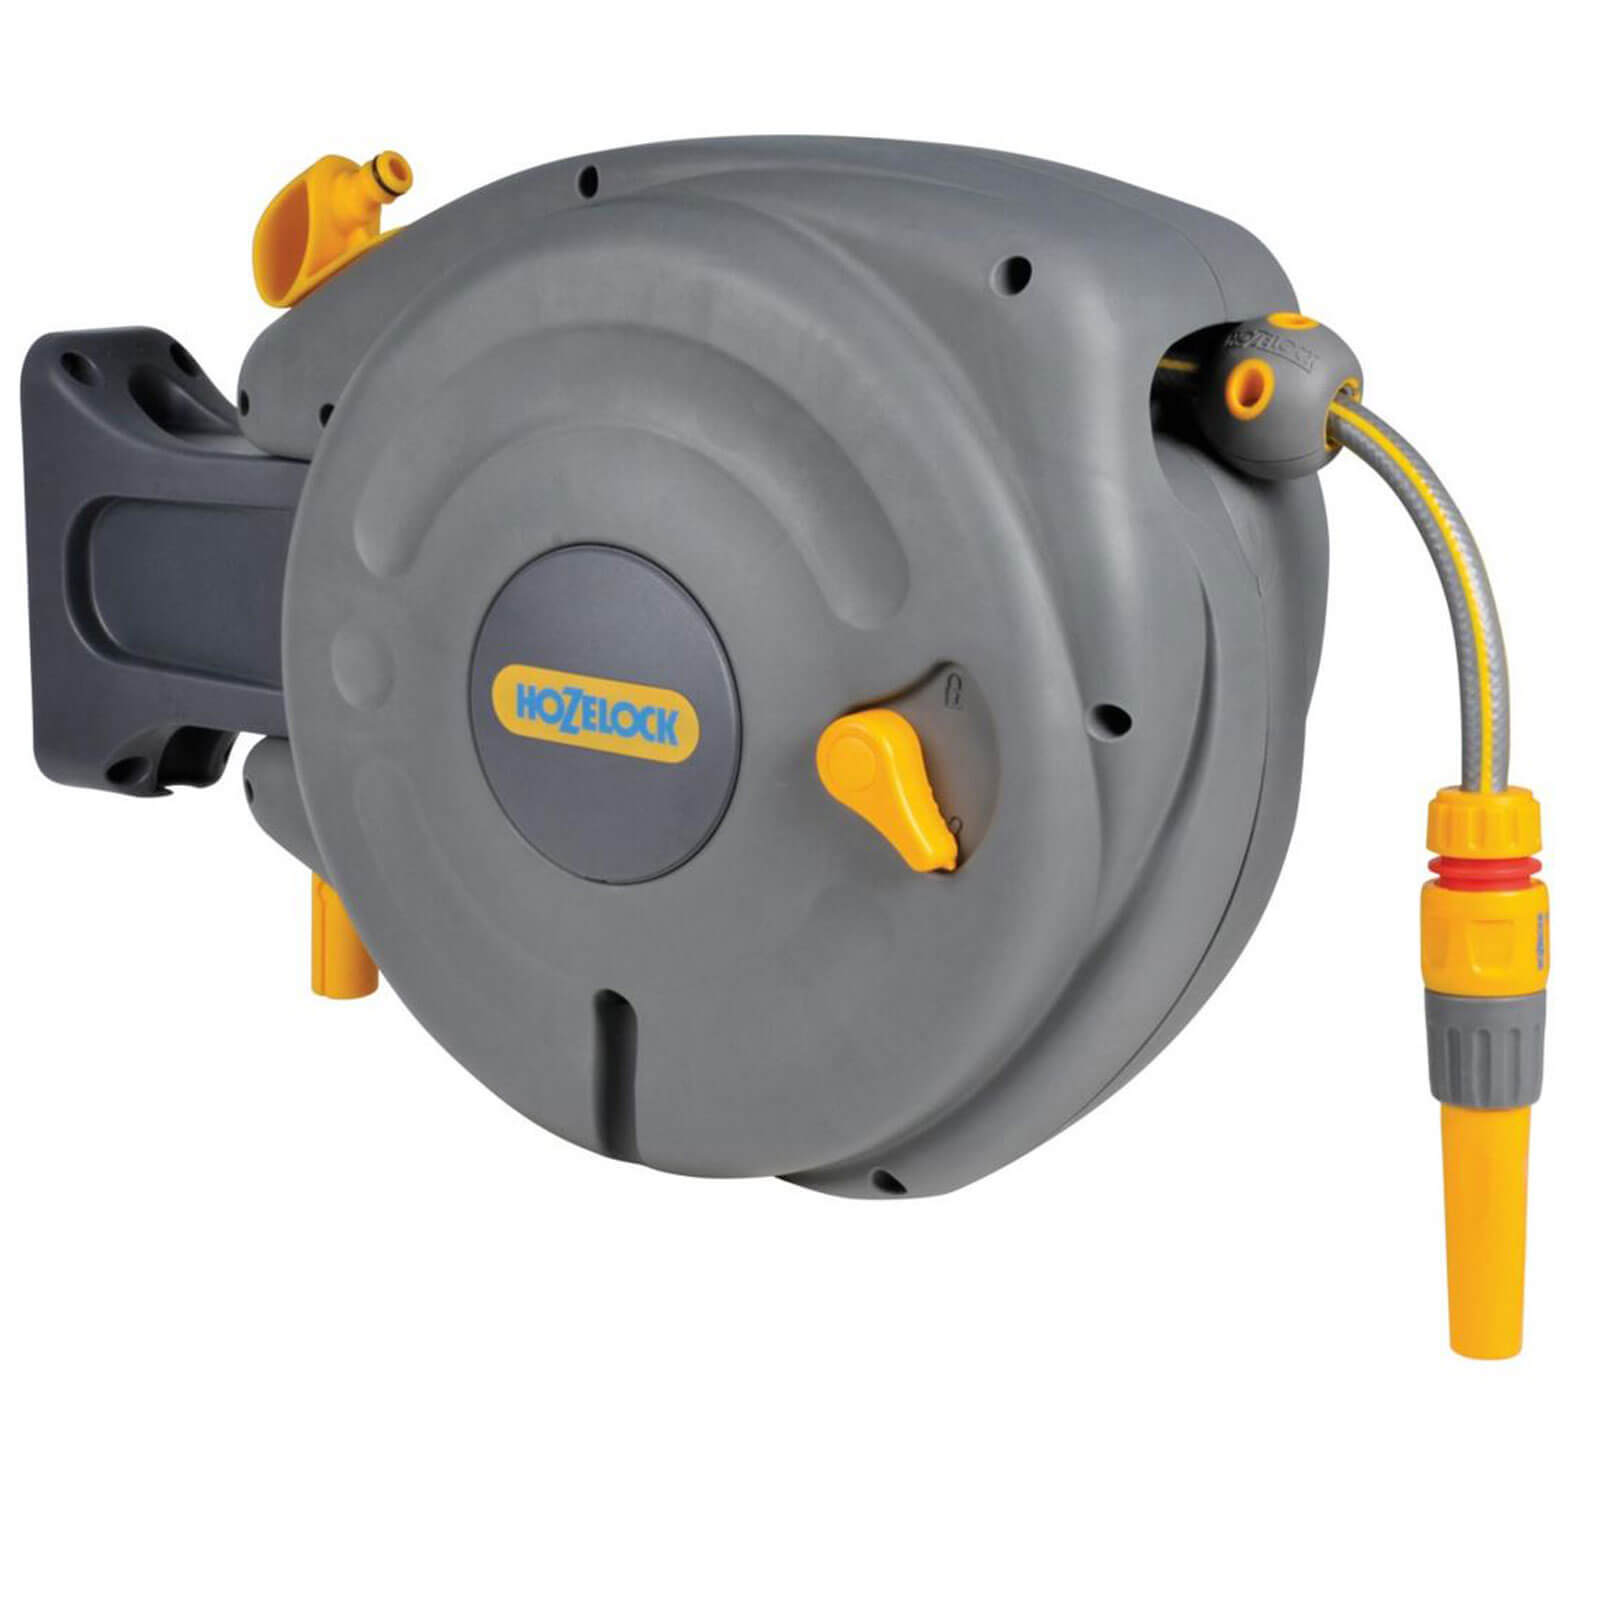 Hozelock 10m Mini Wall Mounted Auto Hose Reel with 10m Hose Pipe